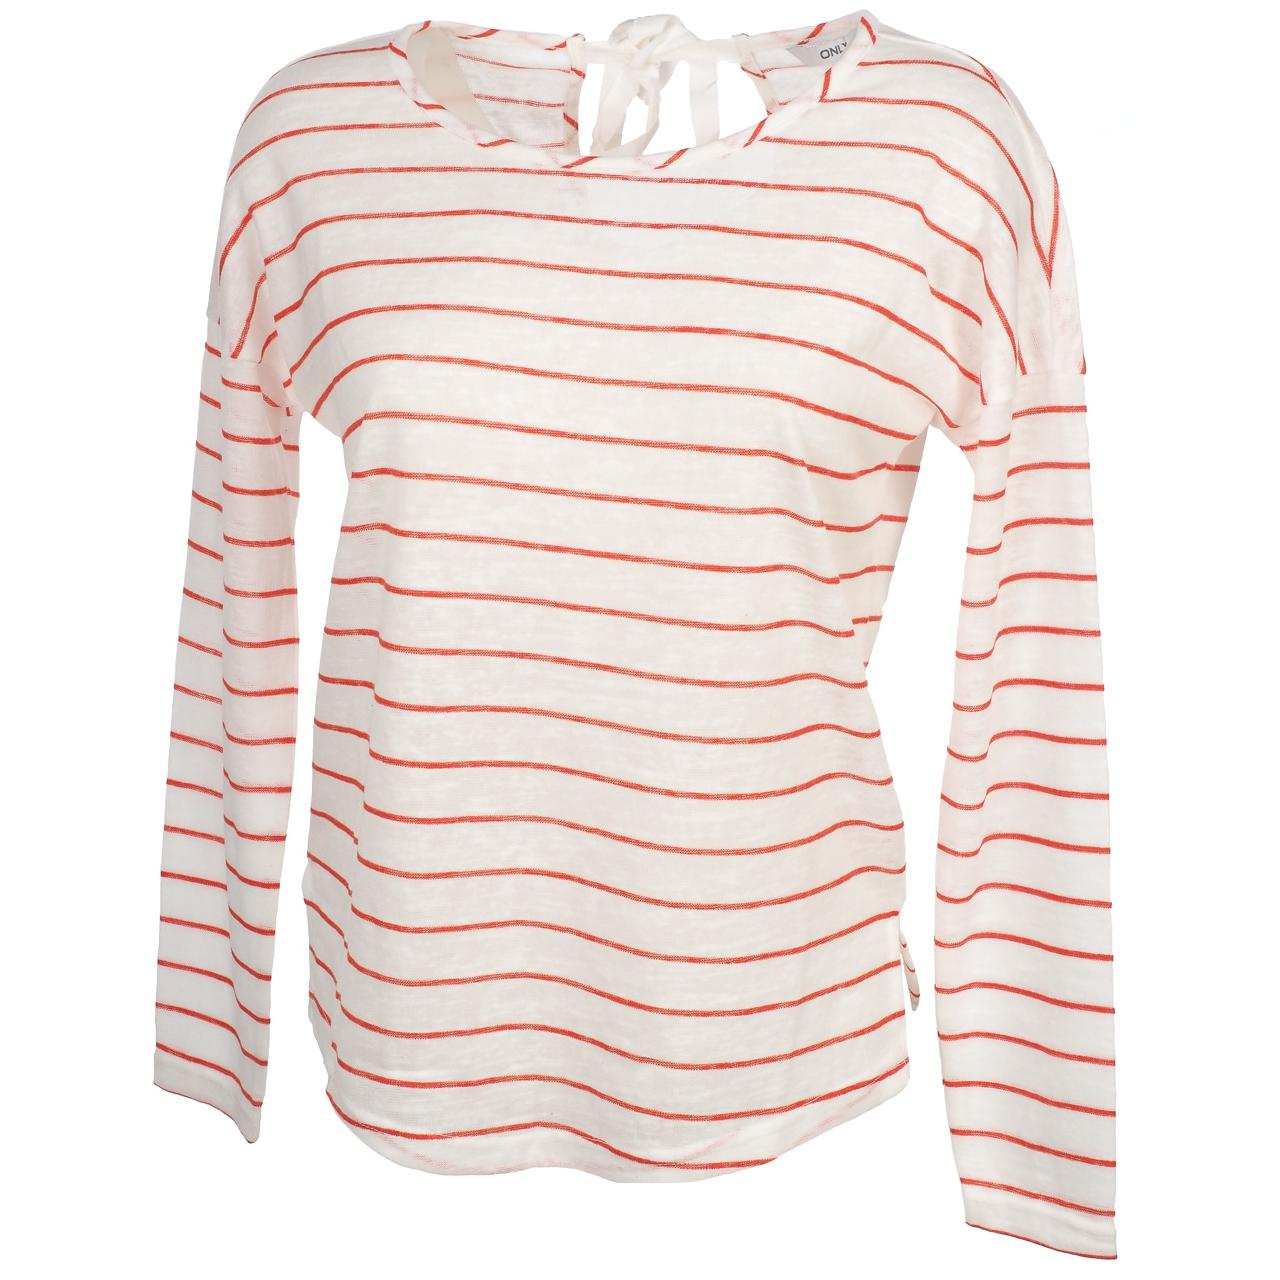 Tee-shirt-manches-longues-Only-Marina2-clouddancer-tee-l-Beige-54834-Neuf